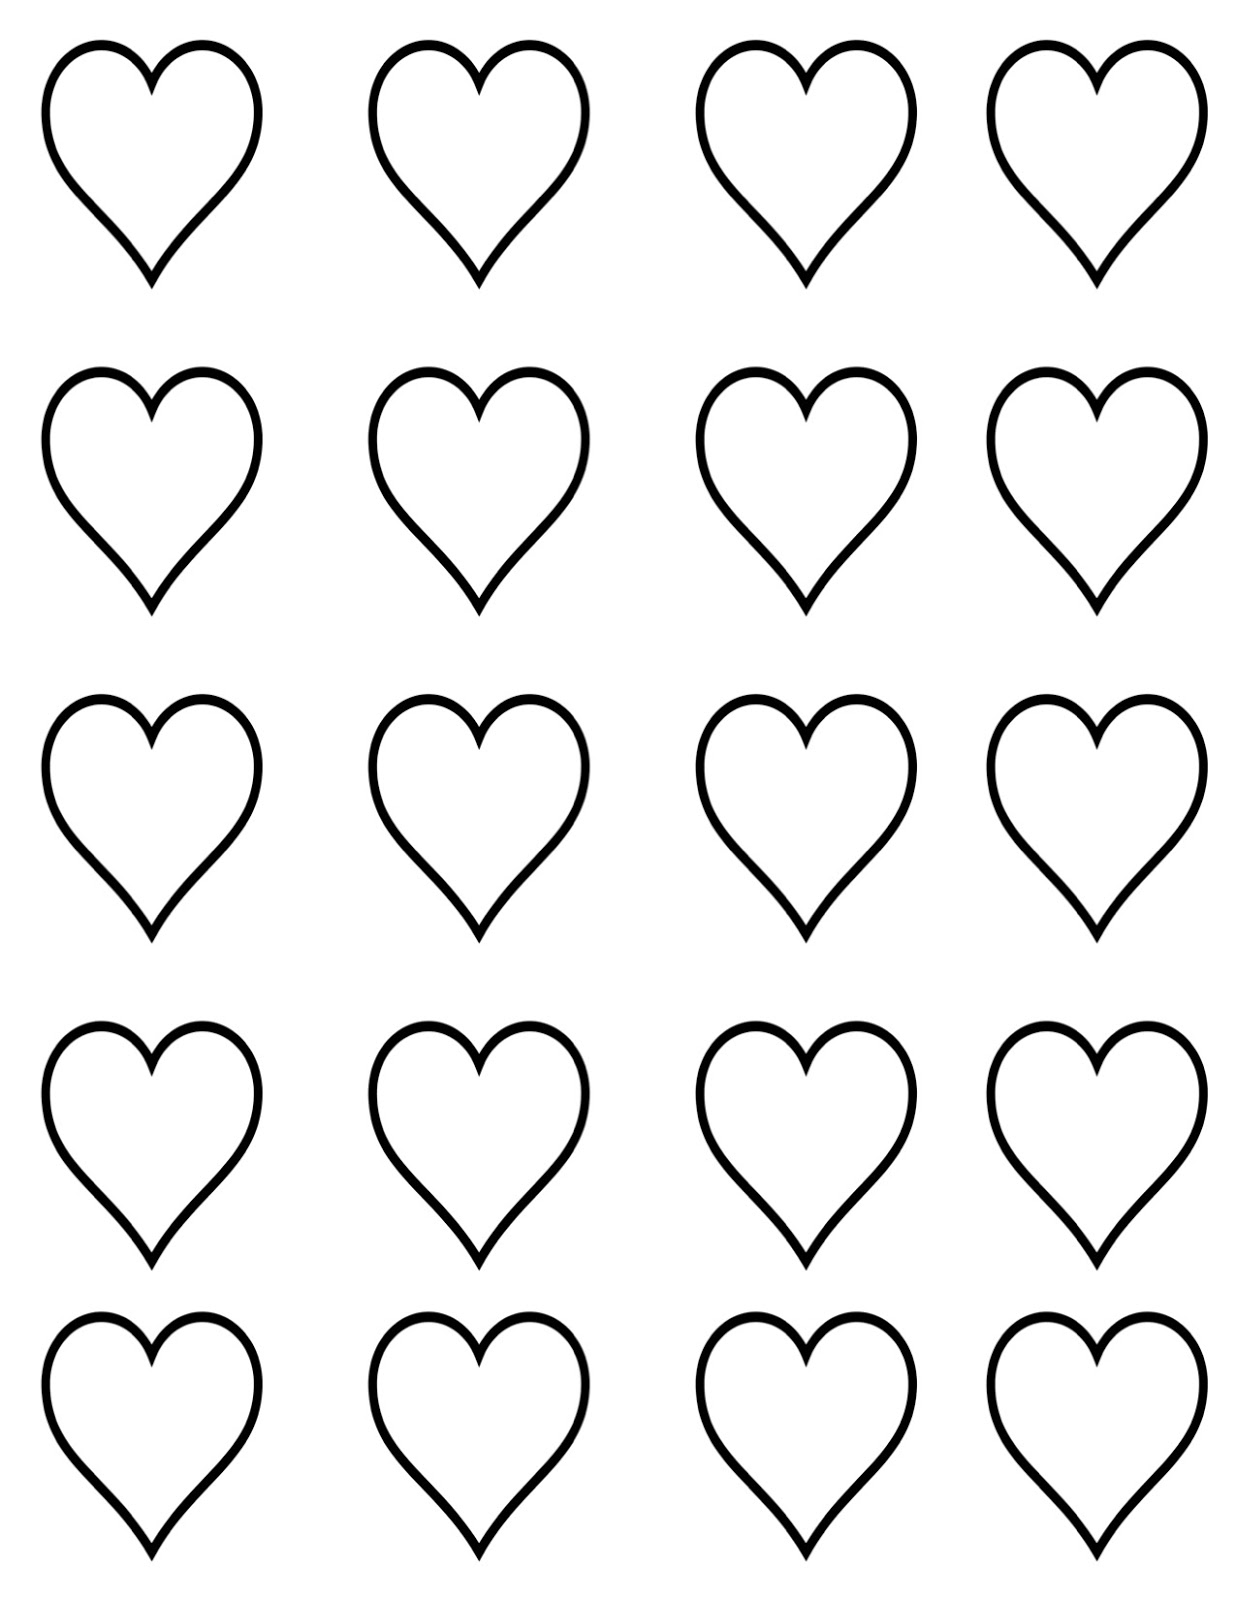 Heart-shaped clipart small #15